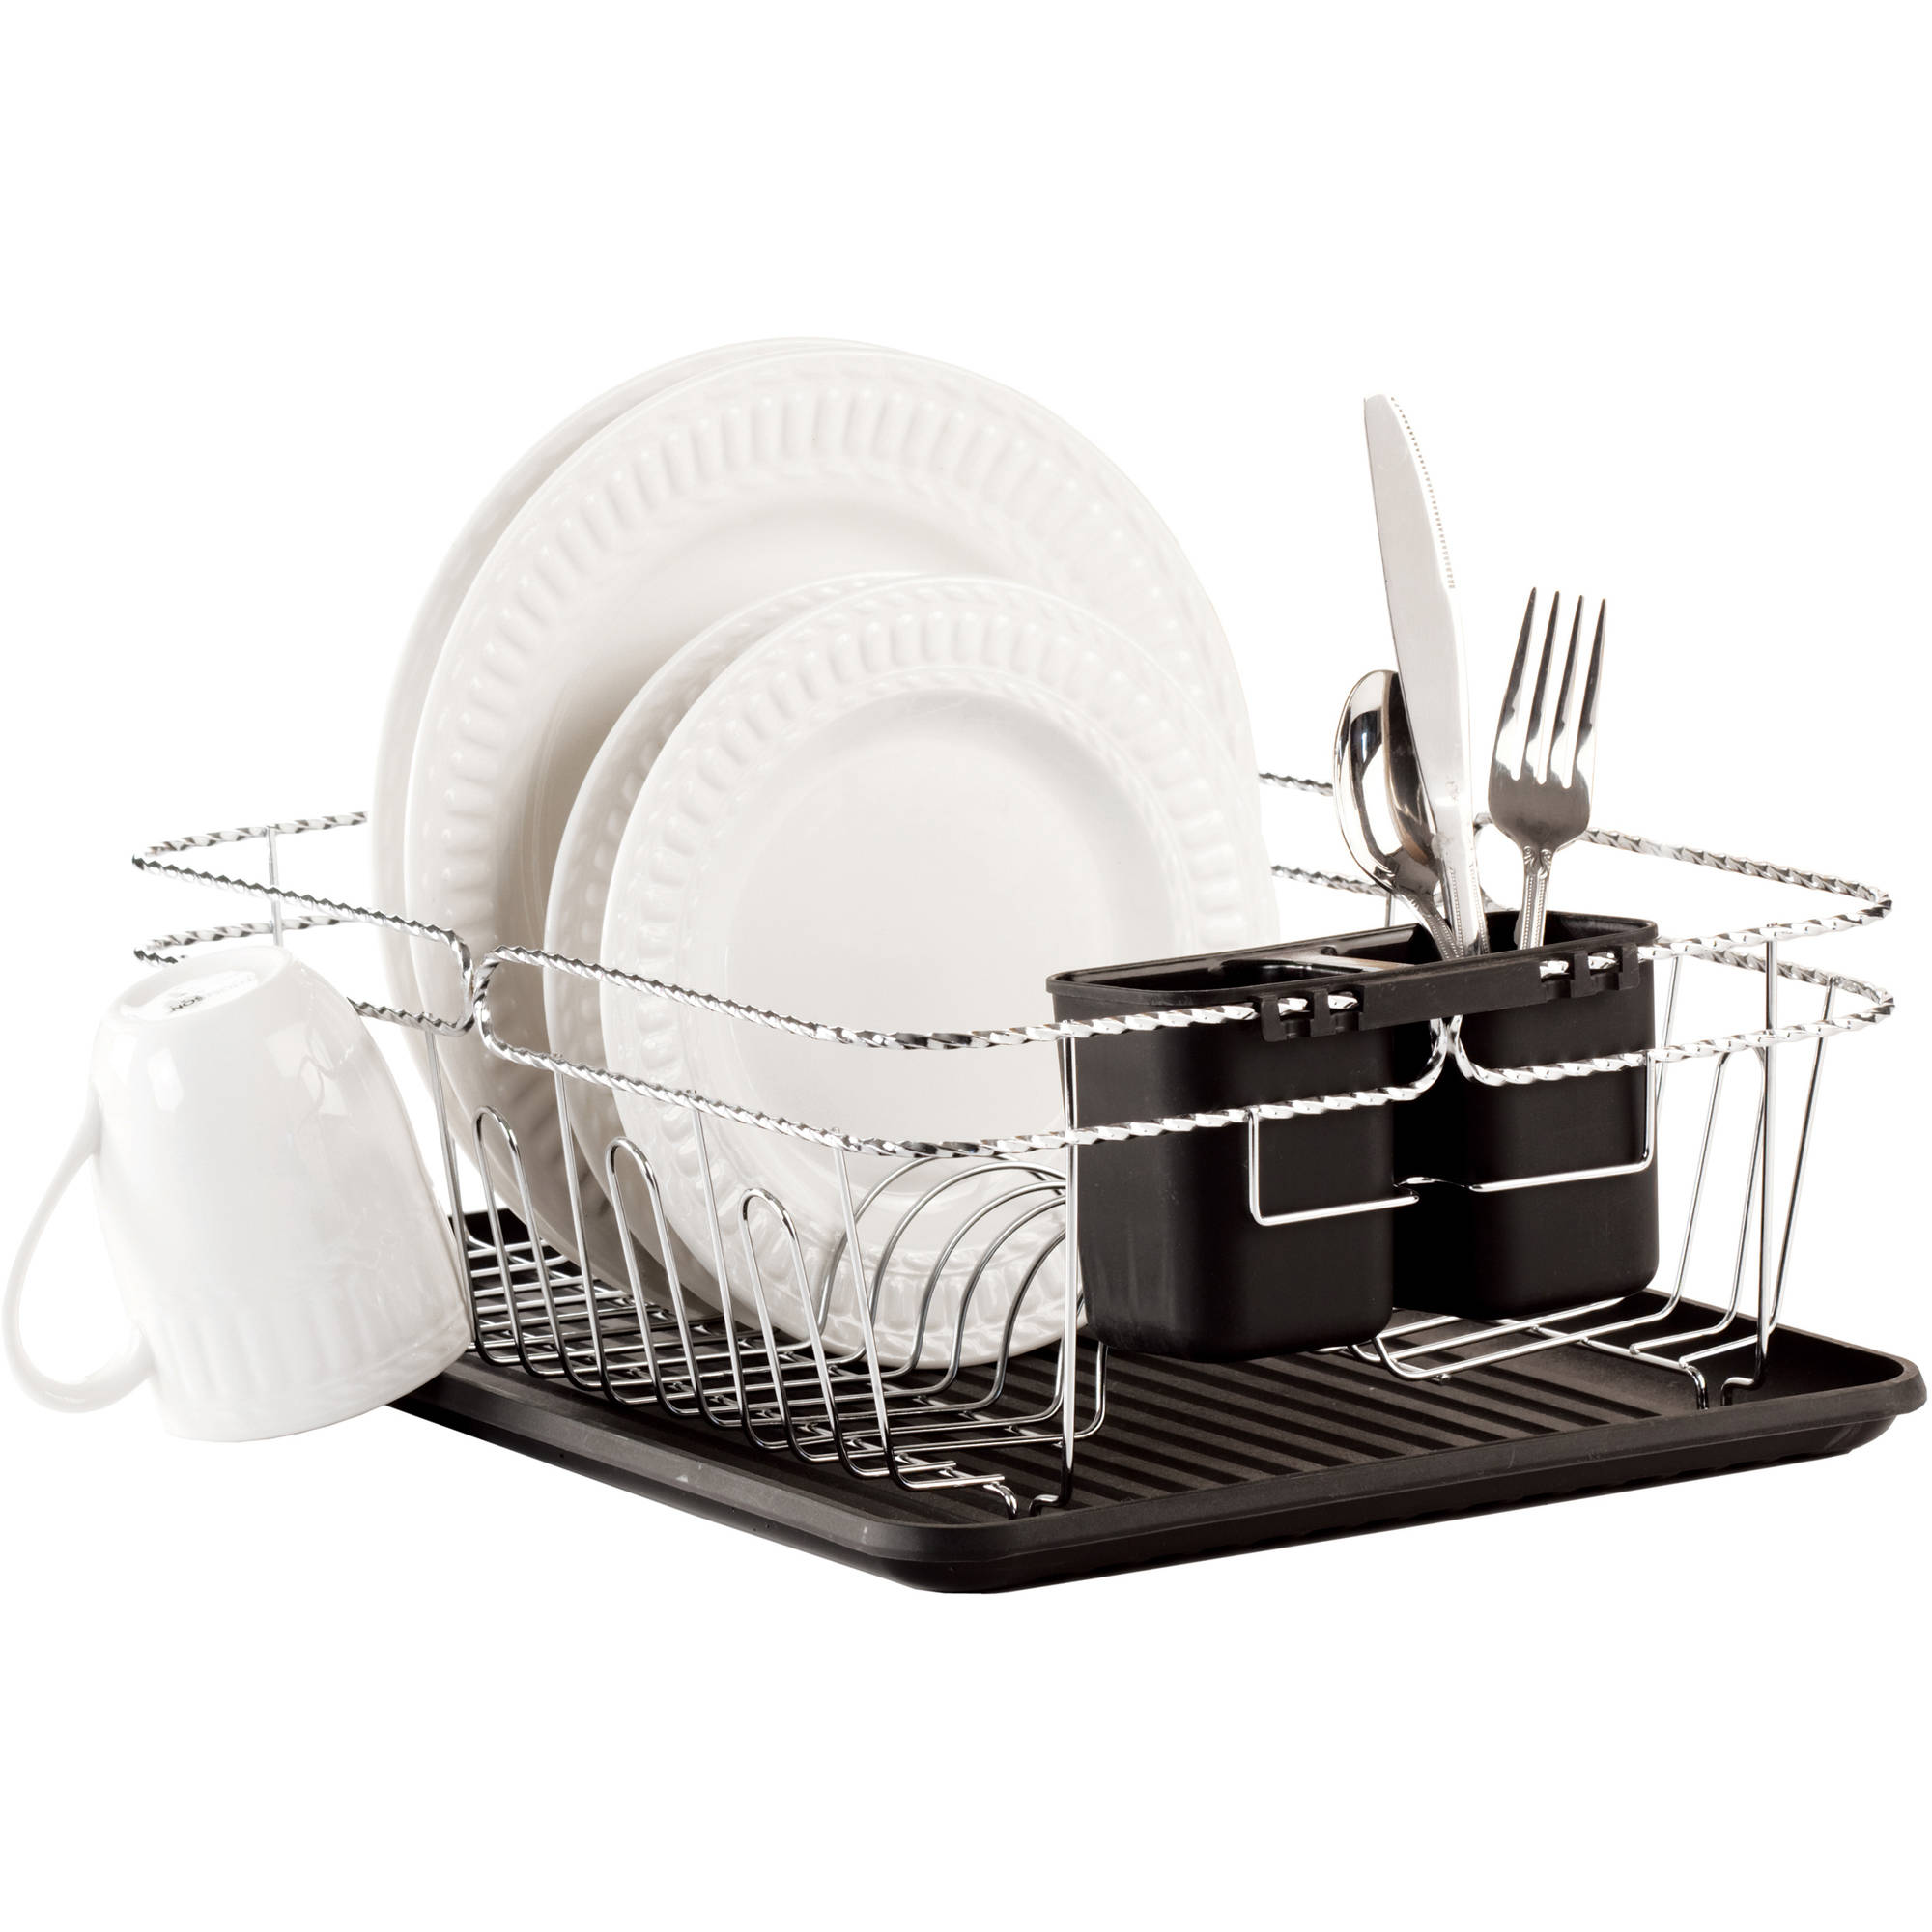 "Kitchen Details 3-Piece Twisted Dish Rack, Chrome, 16.5"" x 12.5"" x 5.5"""